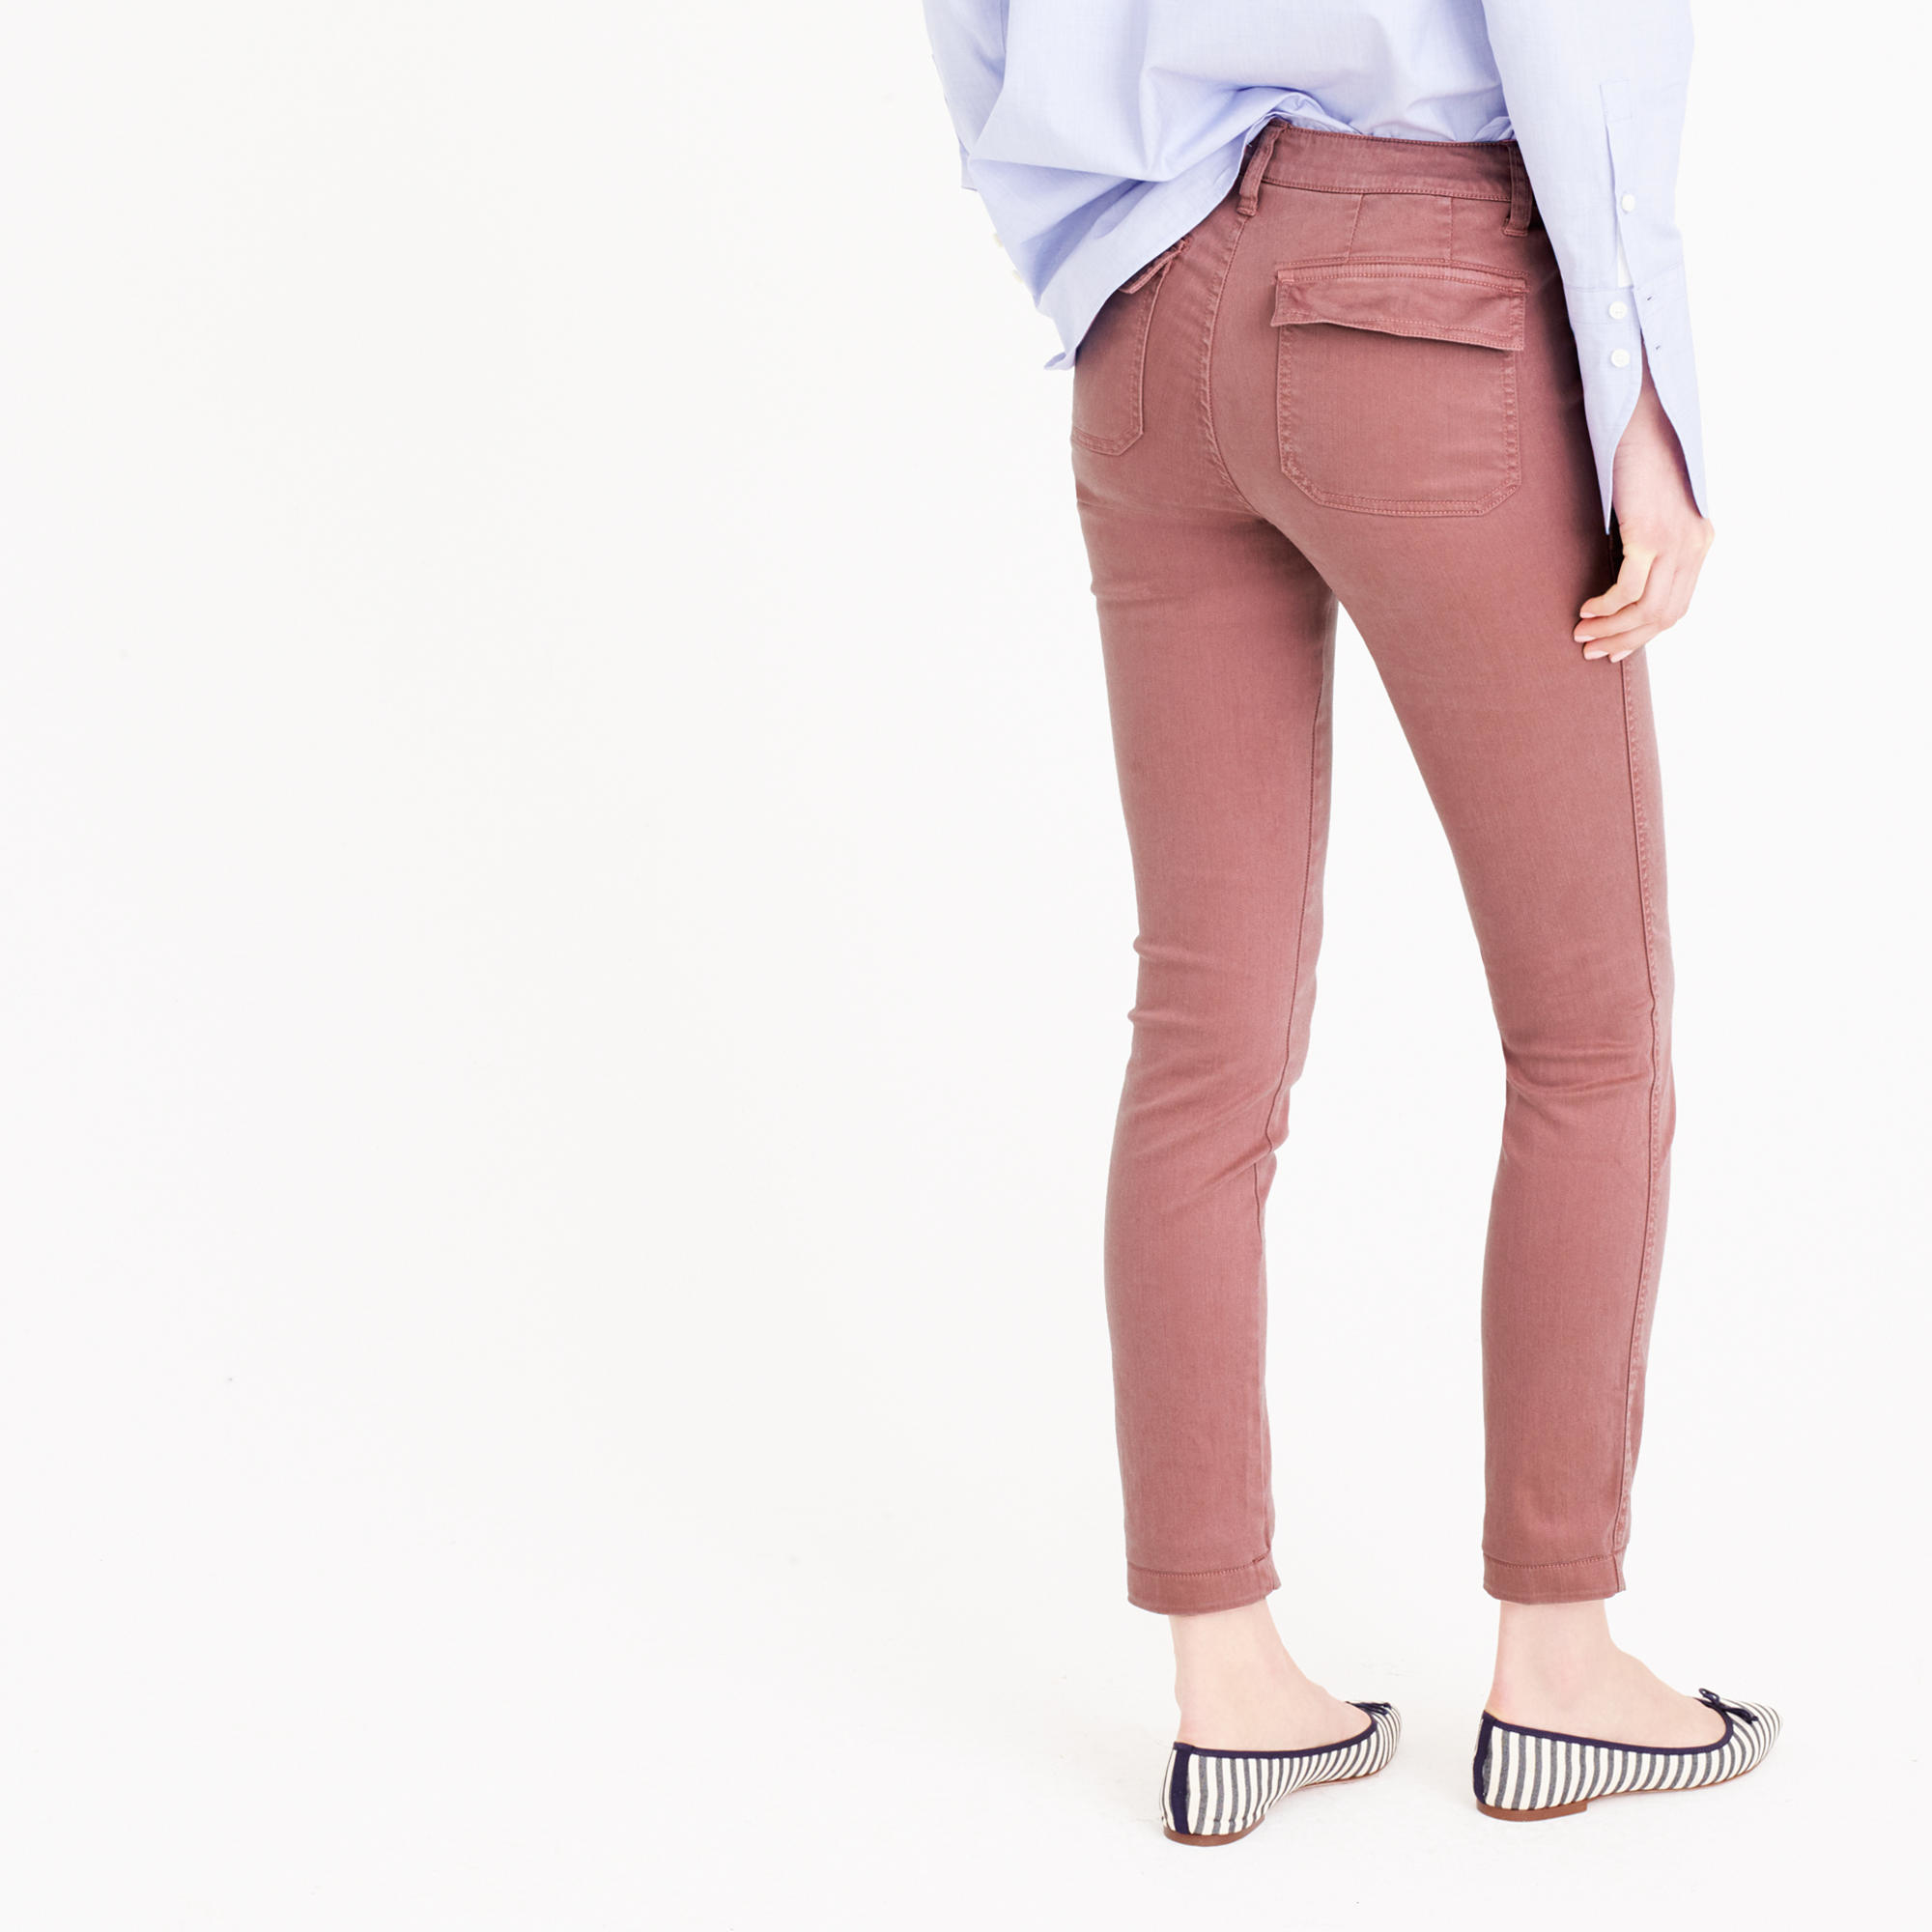 90daee9818 J.Crew Tall Skinny Stretch Cargo Pant in Pink - Lyst